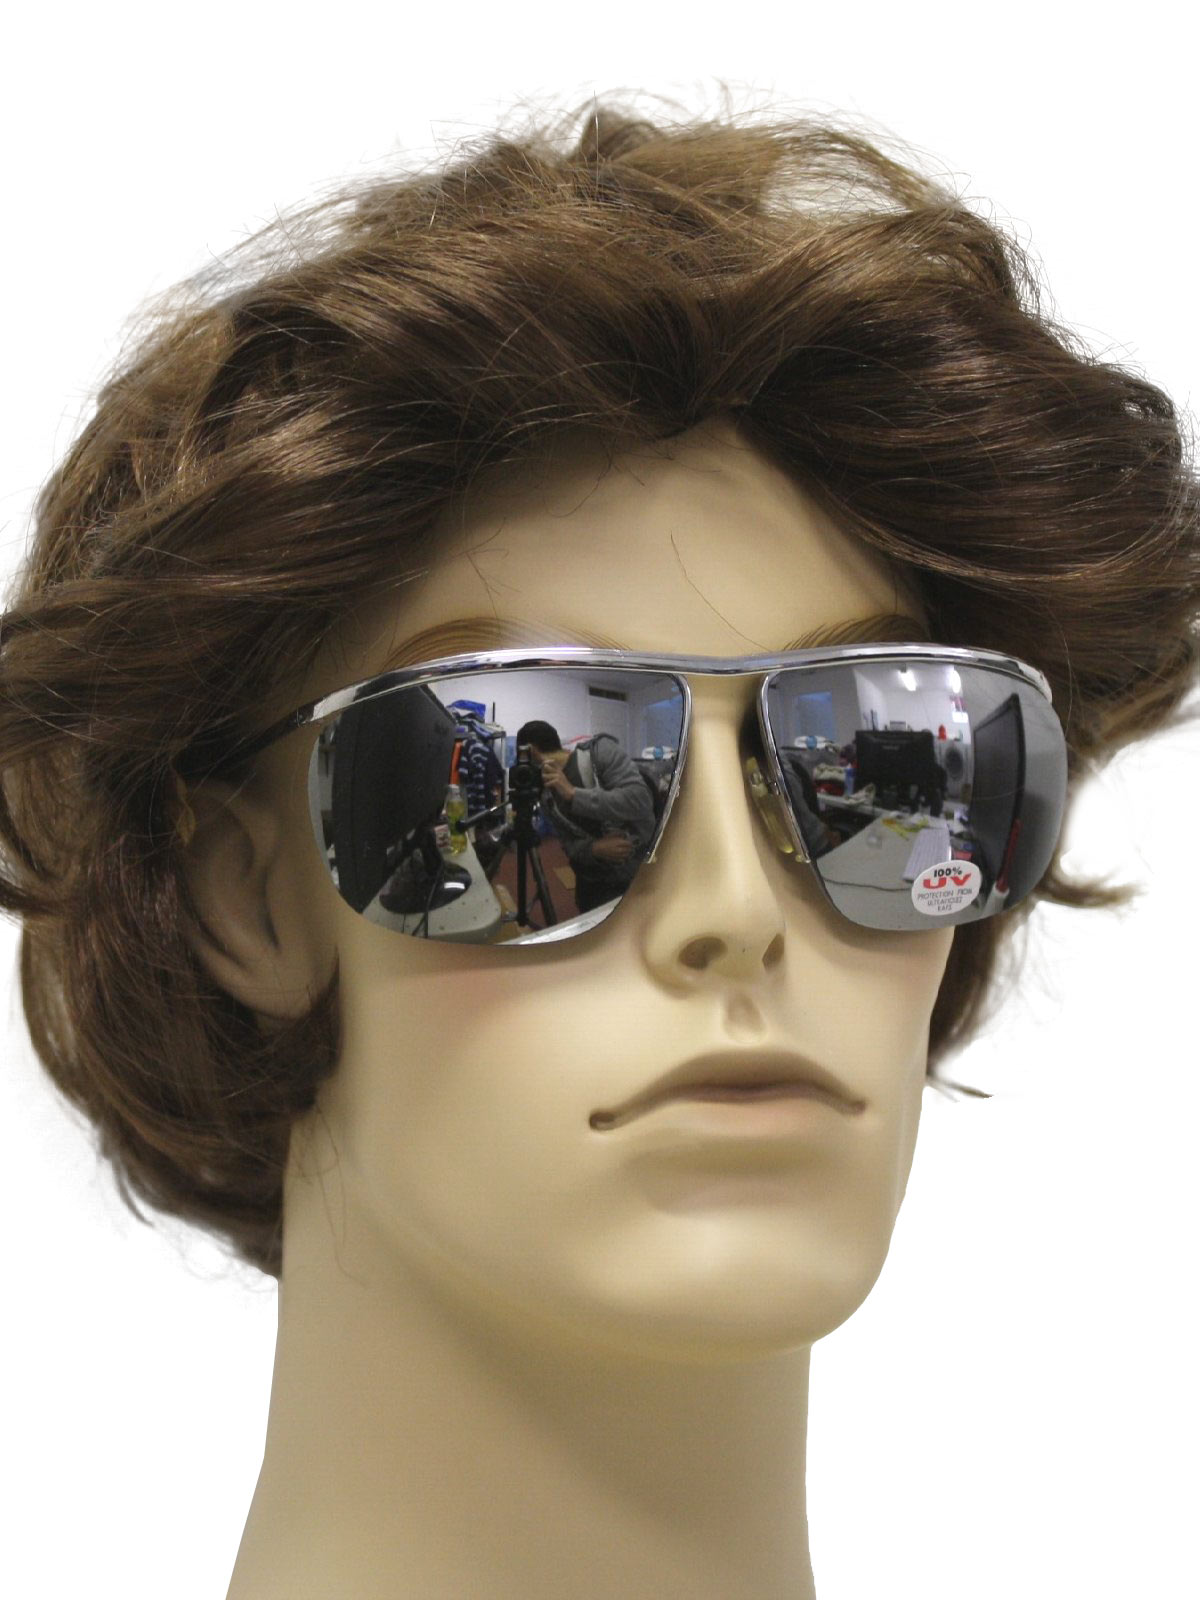 Rimless Glasses Are Ugly : 1980 s mens totally 80s sunglasses USD 23 00 in stock item ...